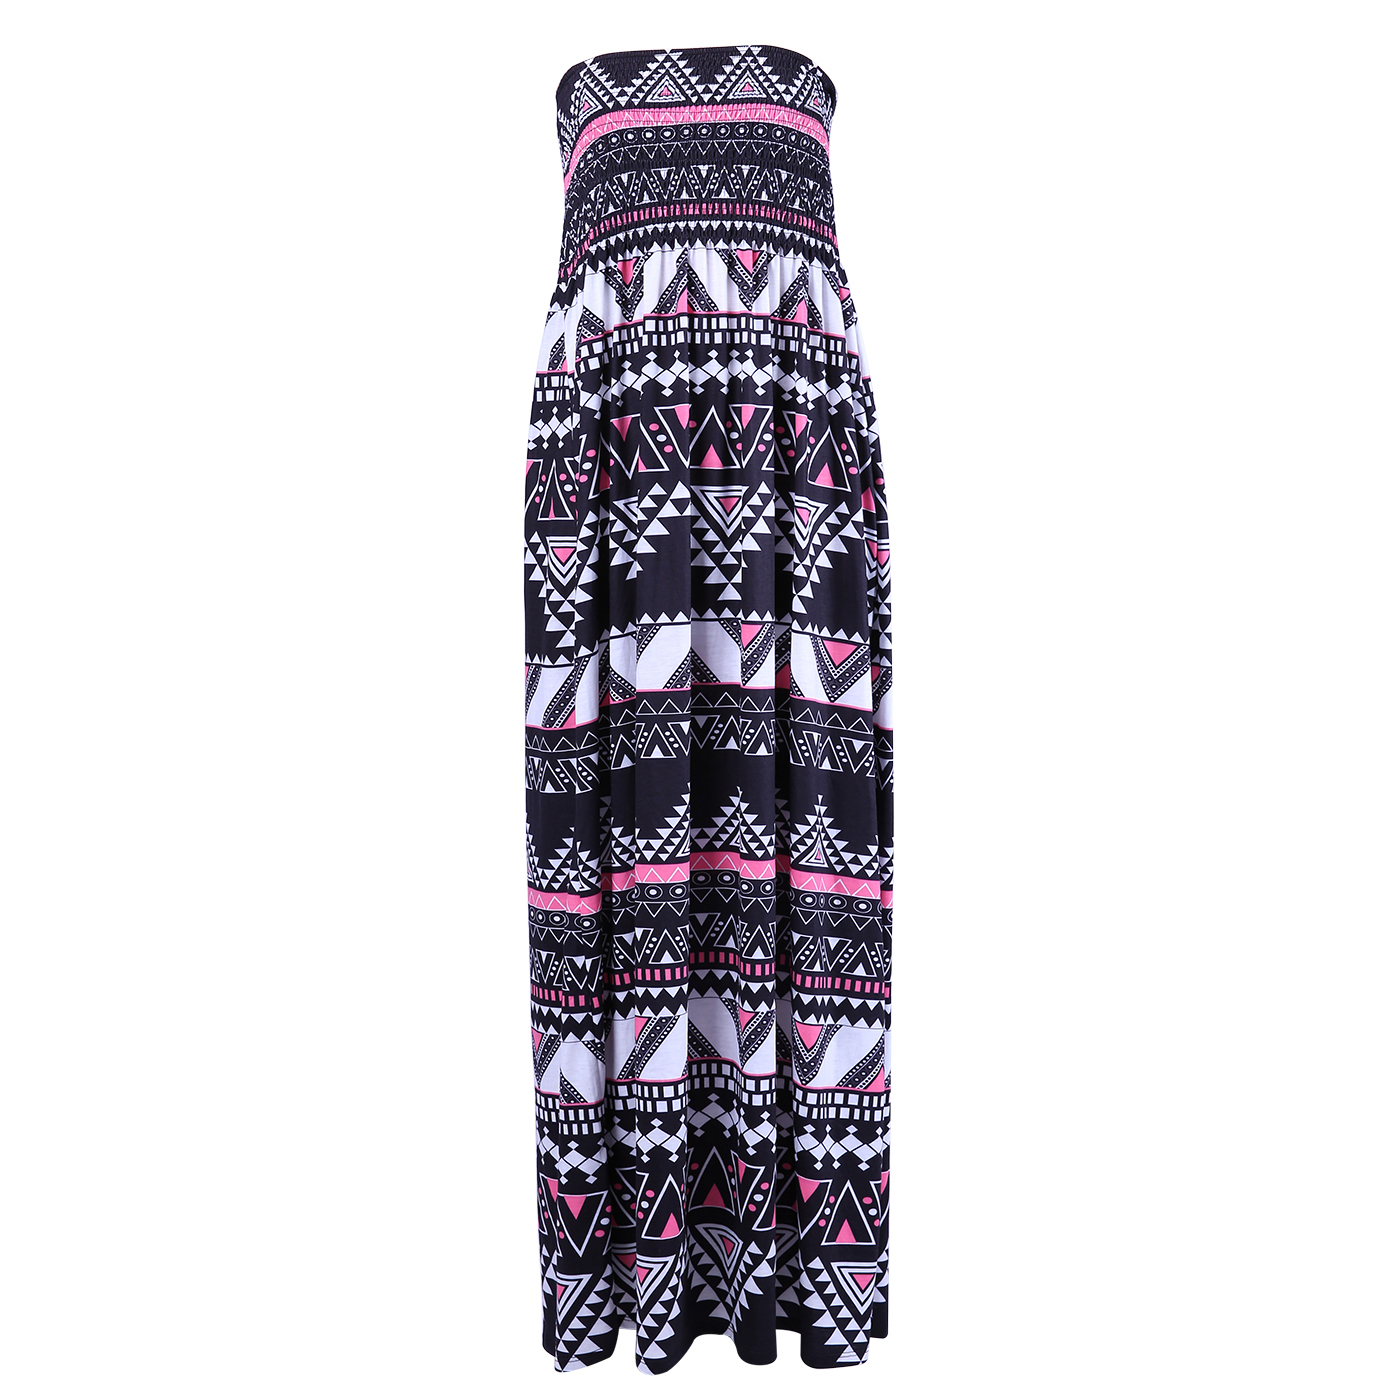 HDE Women\'s Strapless Maxi Dress Plus Size Tube Top Long Skirt Sundress  Cover Up (Pink Black Tribal, 4X)